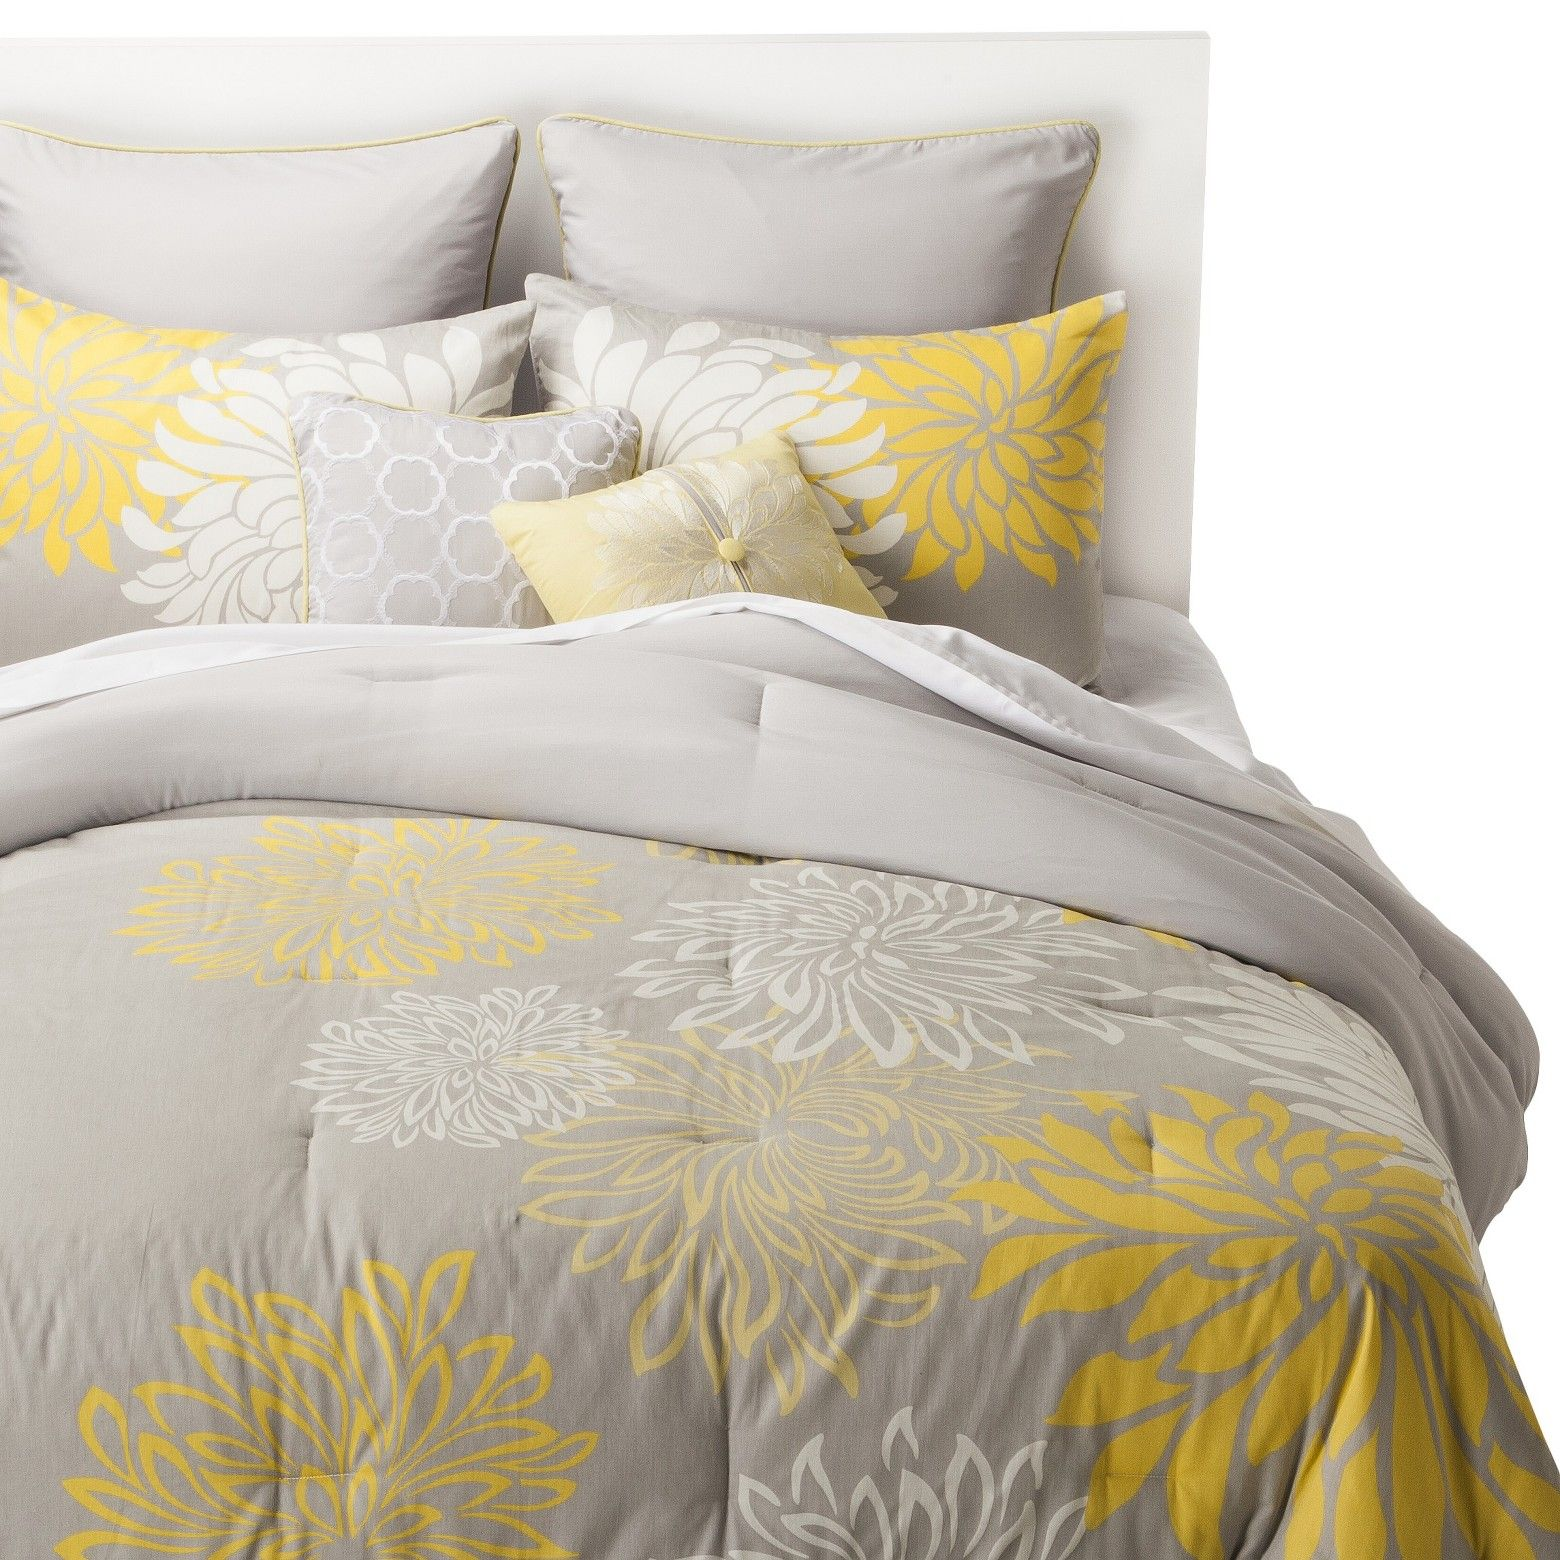 The Anya 8Piece Floral Print Bedding Set in gray and